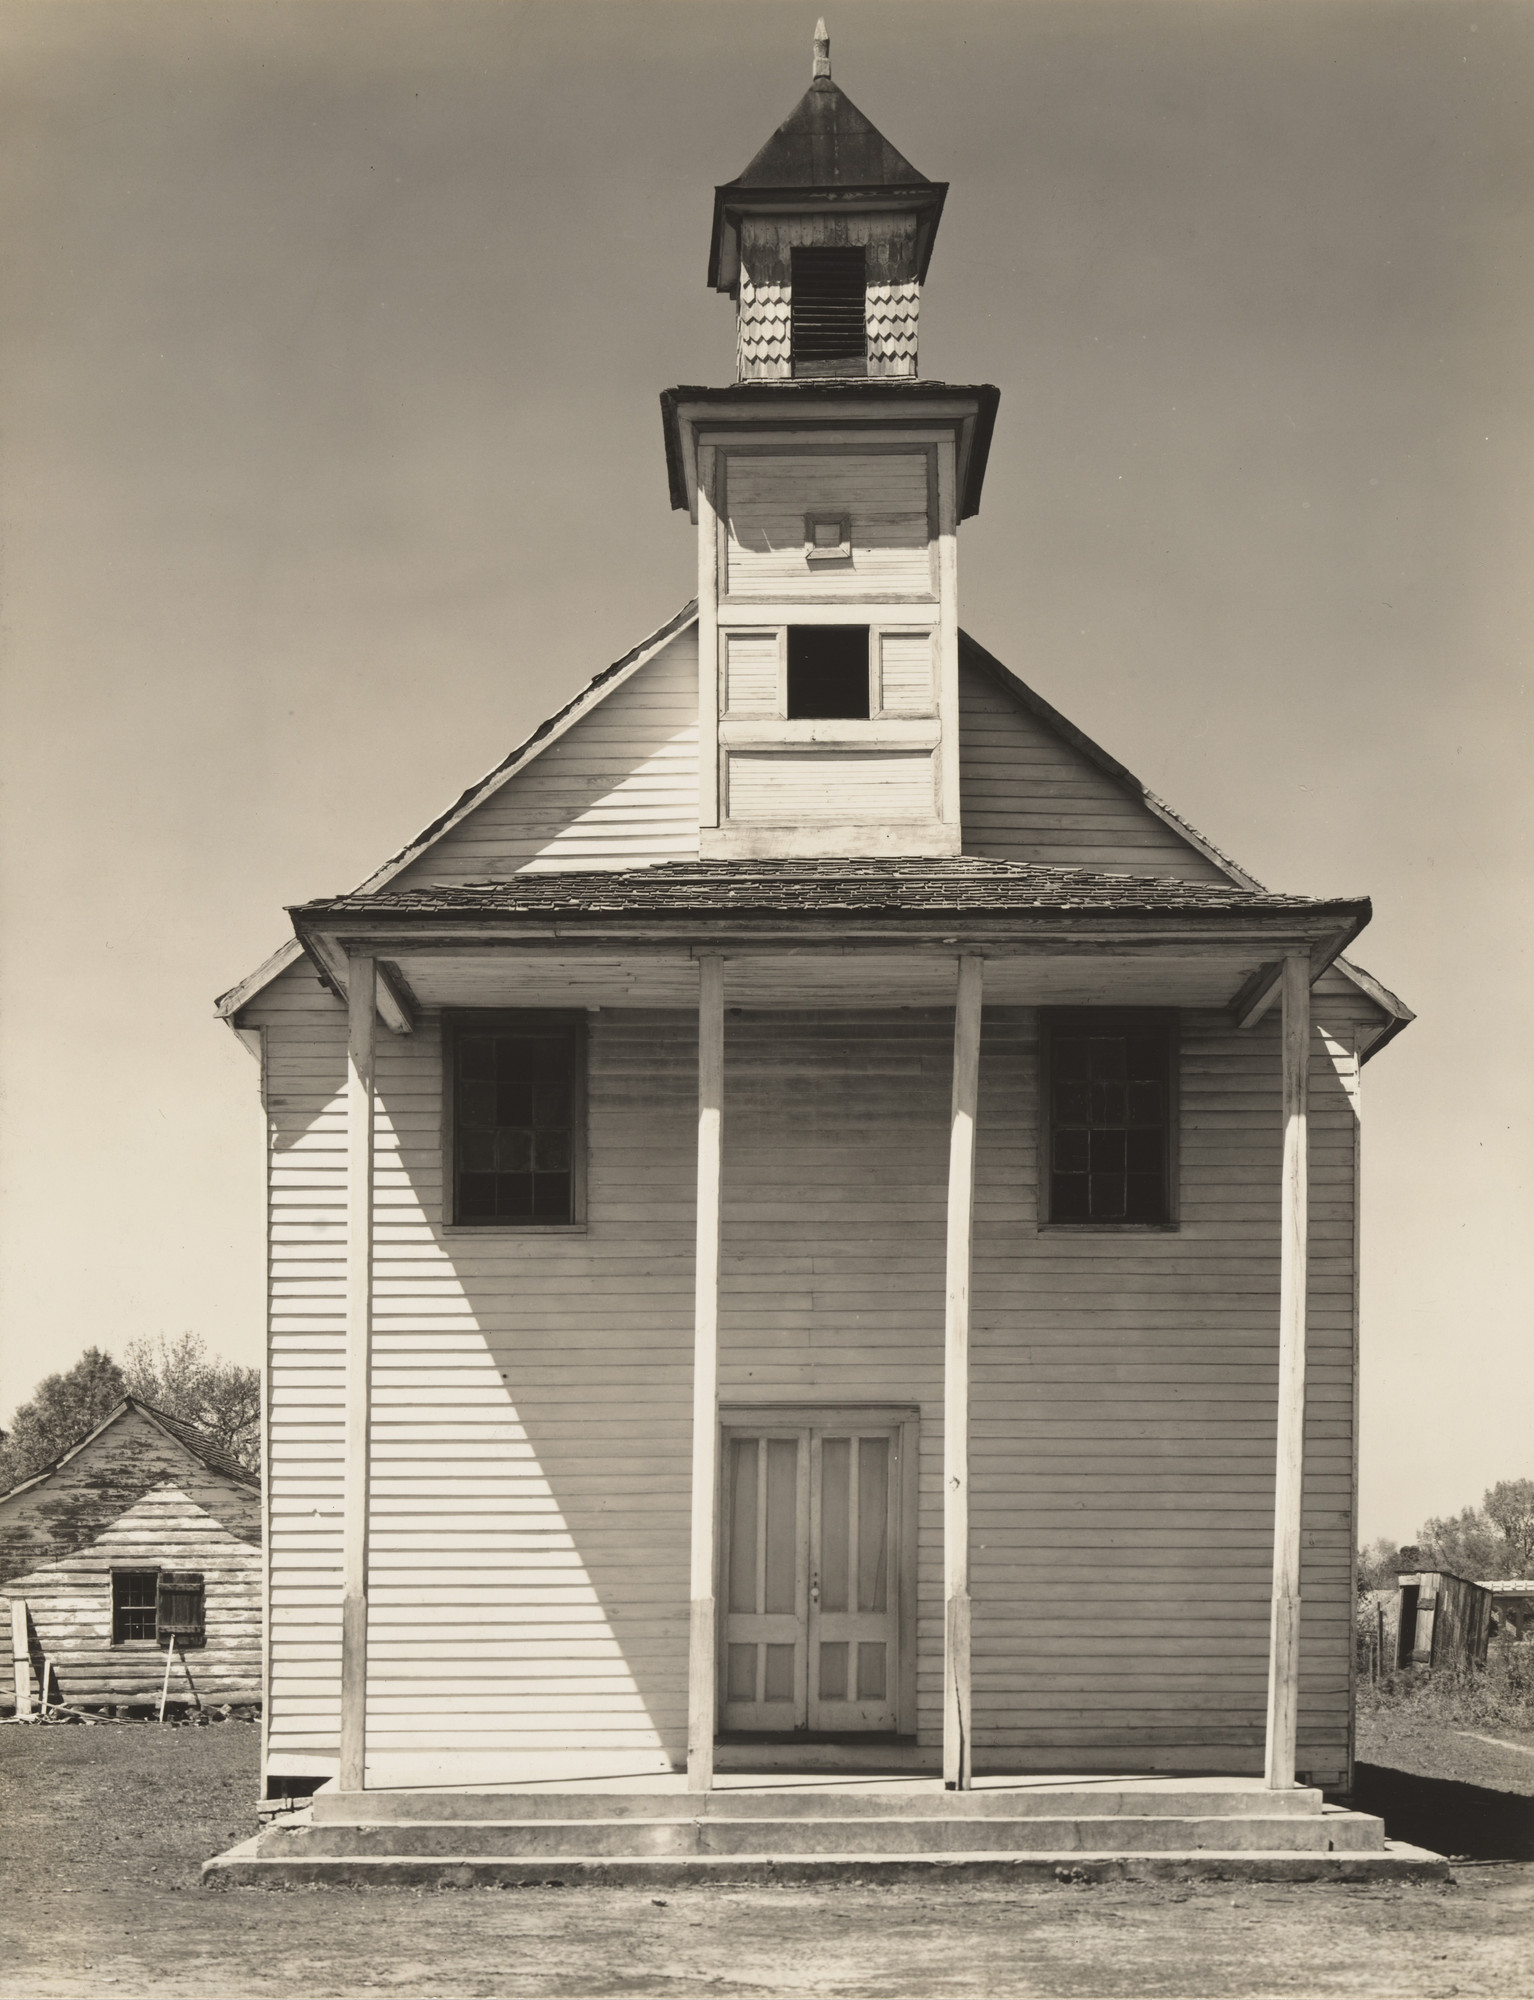 Walker Evans. Negro Church, South Carolina. 1936